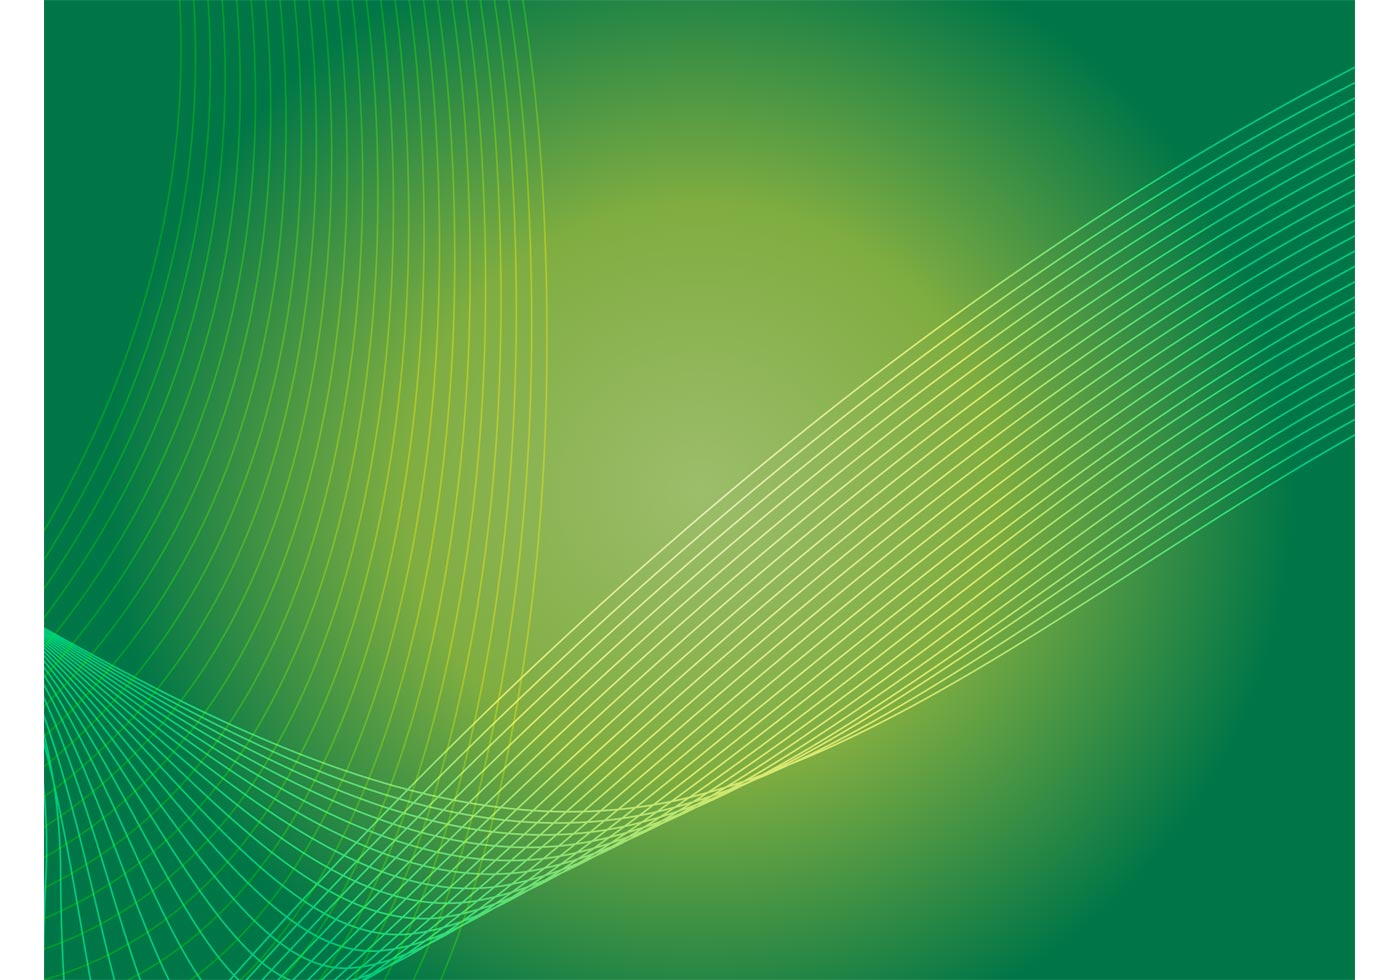 Glowing Pink And Green Curves Wallpaper 2843 Green